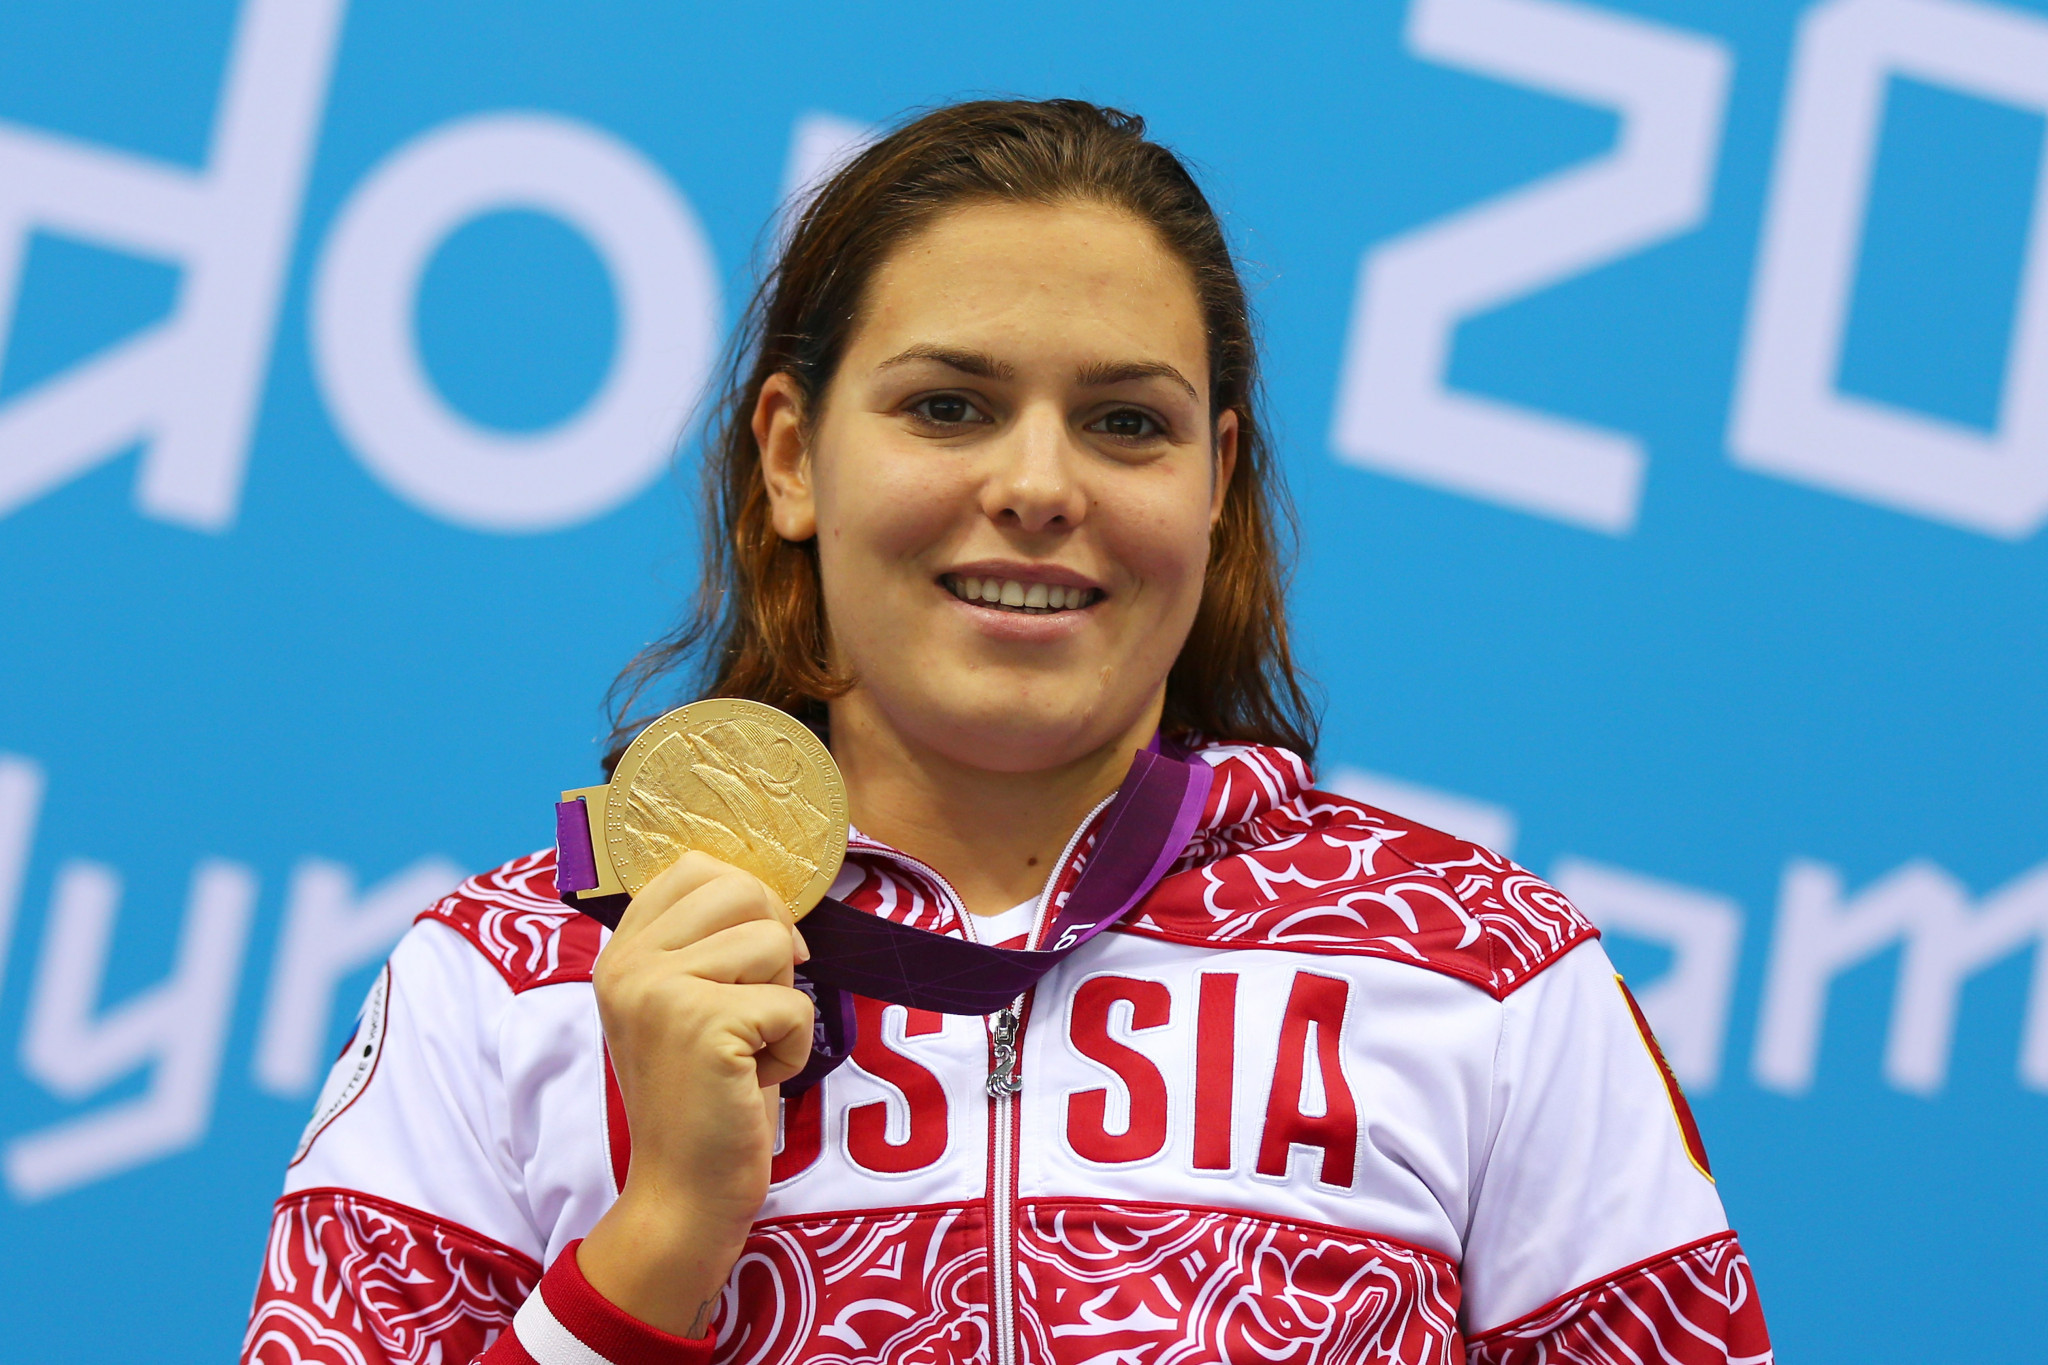 Oksana Savchenko won eight Paralympic swimming titles during her career ©Getty Images